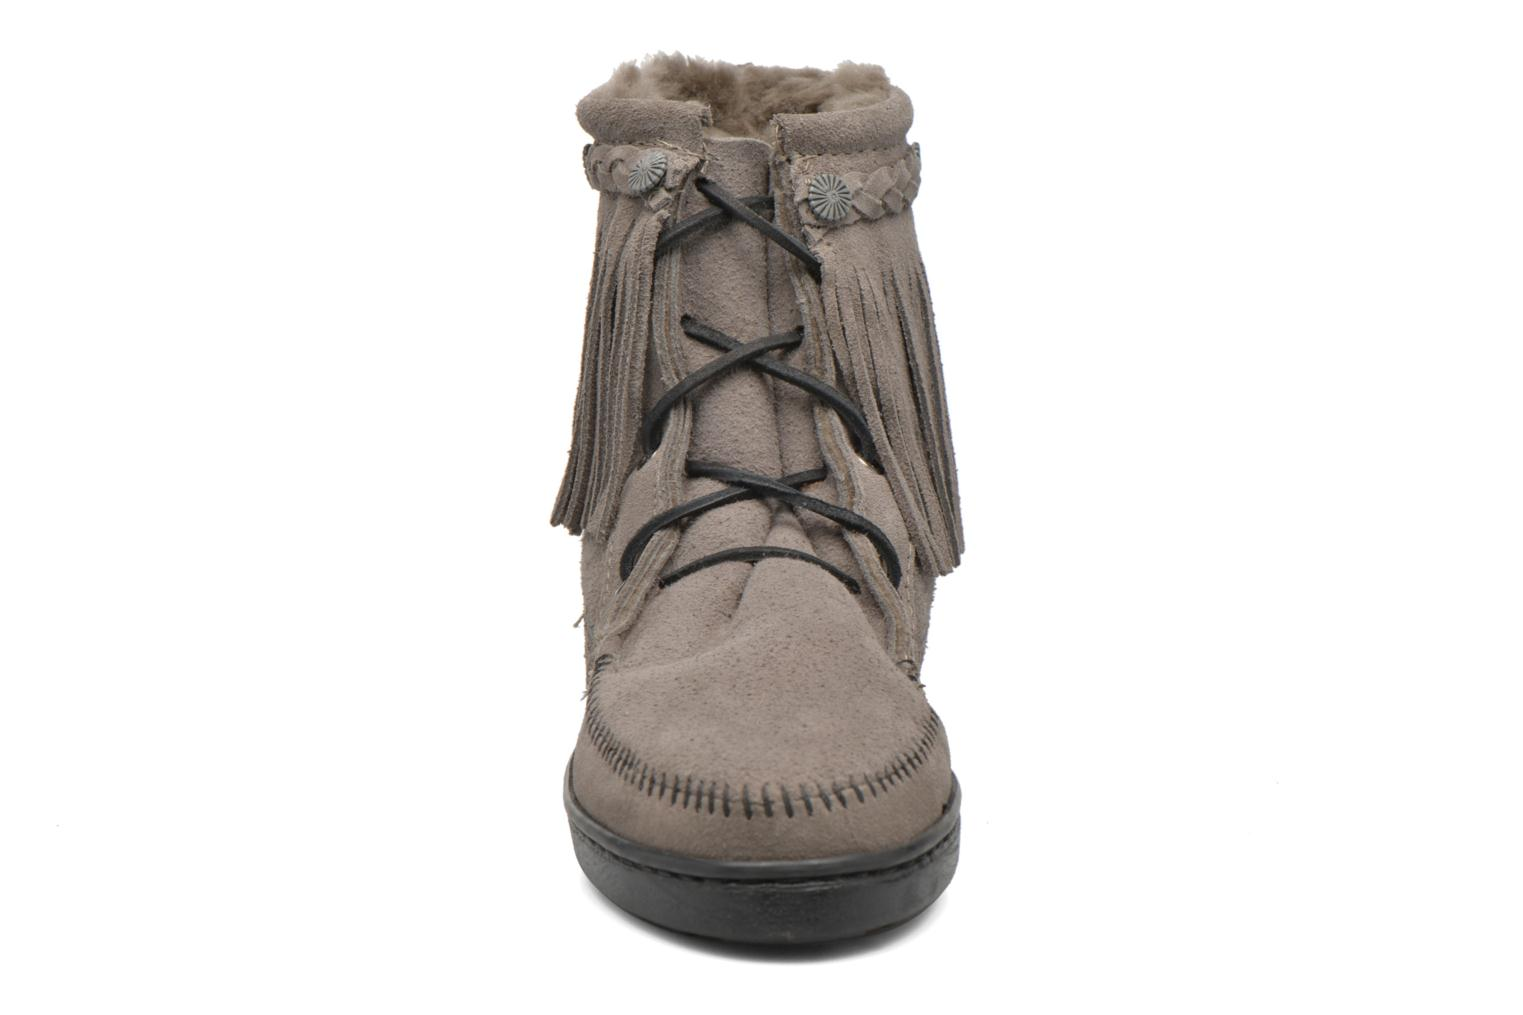 SHEEPSKIN TRAMPER Grey Sheepskin